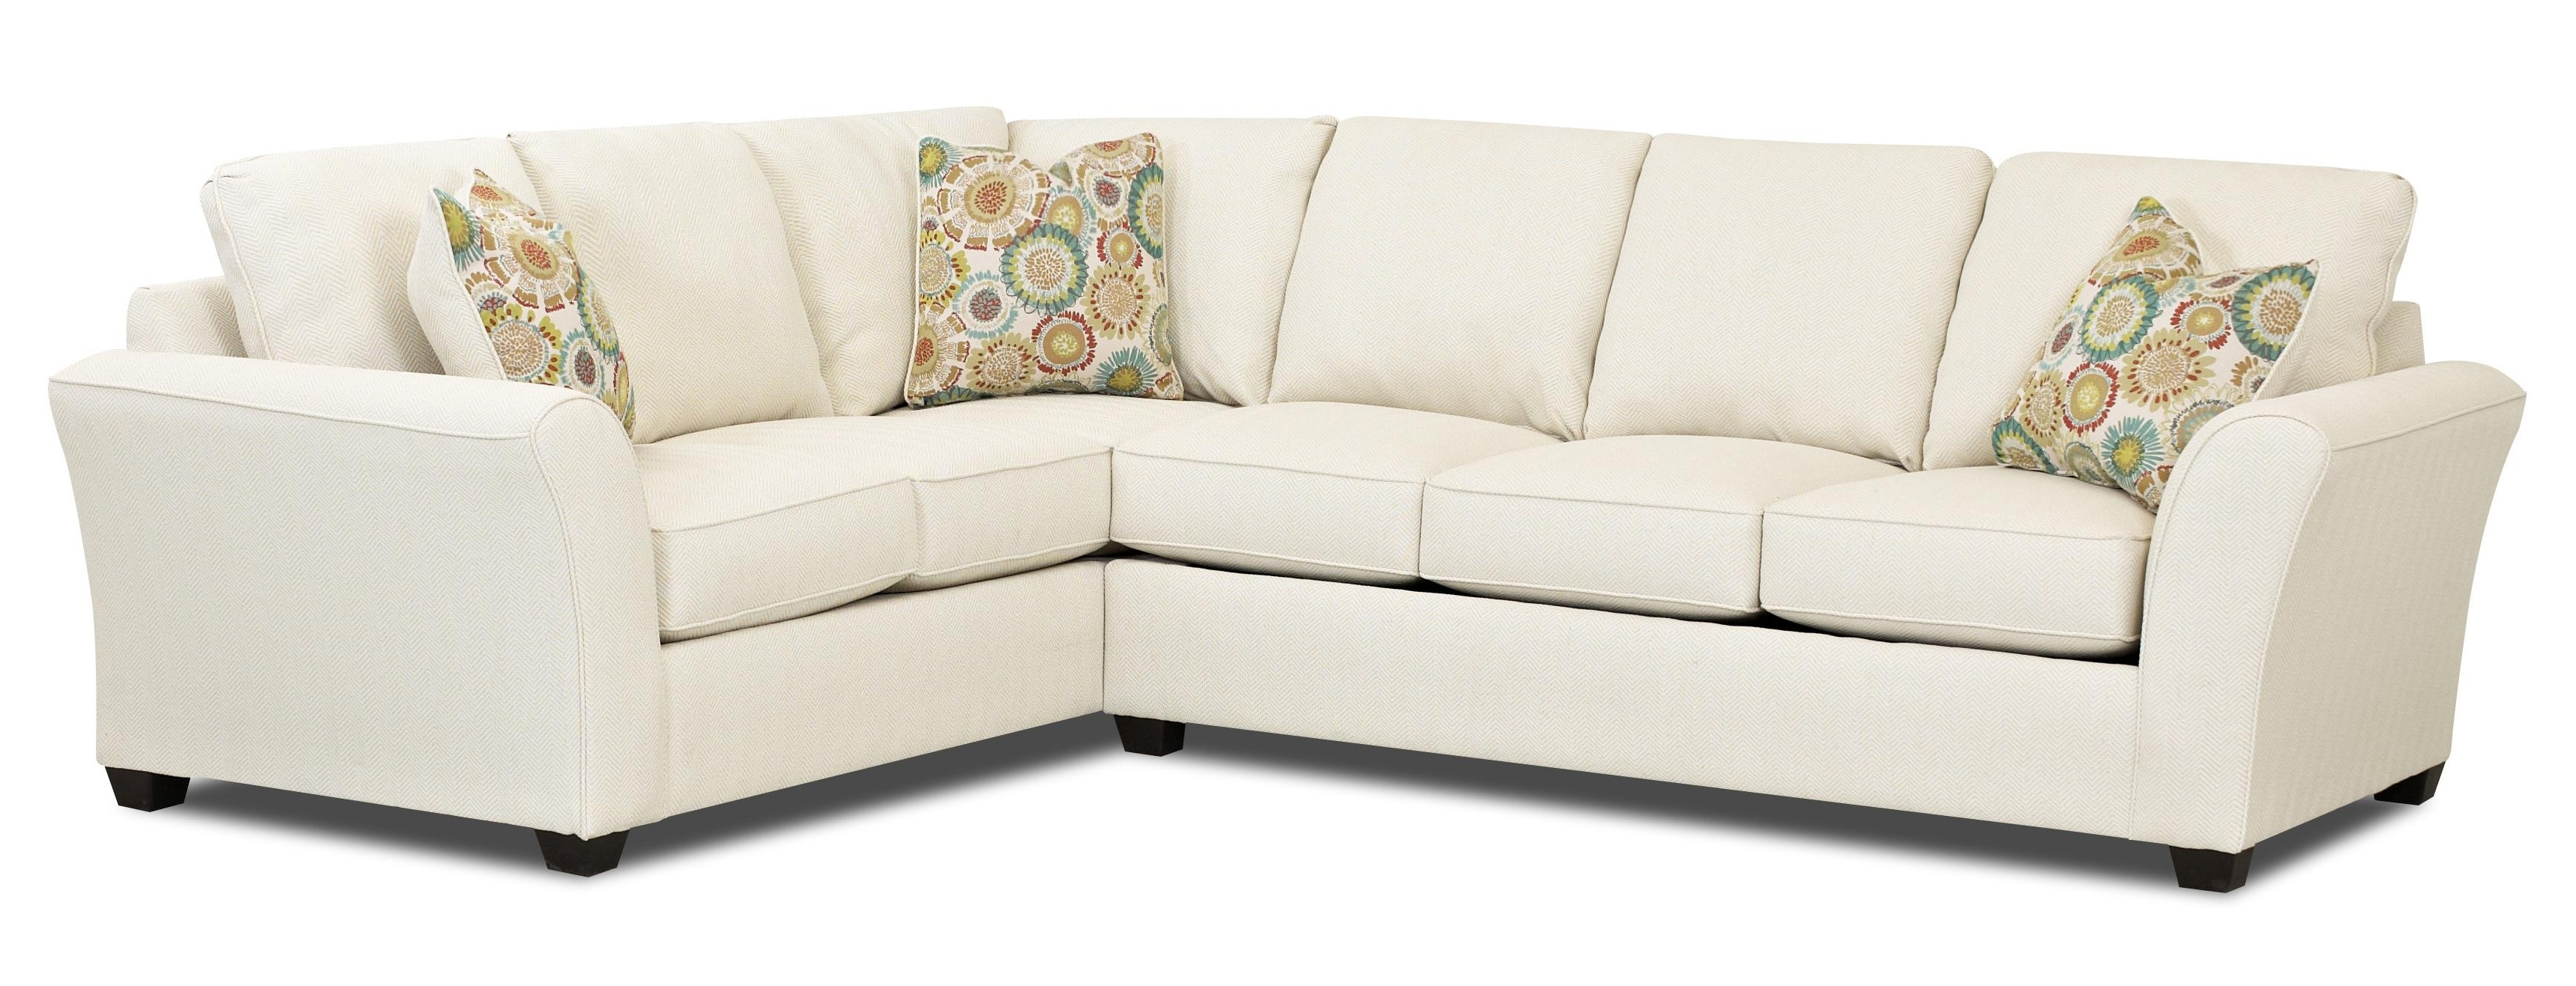 Furniture : 4 Seater Sofa Bed 2 Seater Vinyl Sofa 5 Seater Sofa Throughout Preferred Sectional Sofas In Hyderabad (View 10 of 15)